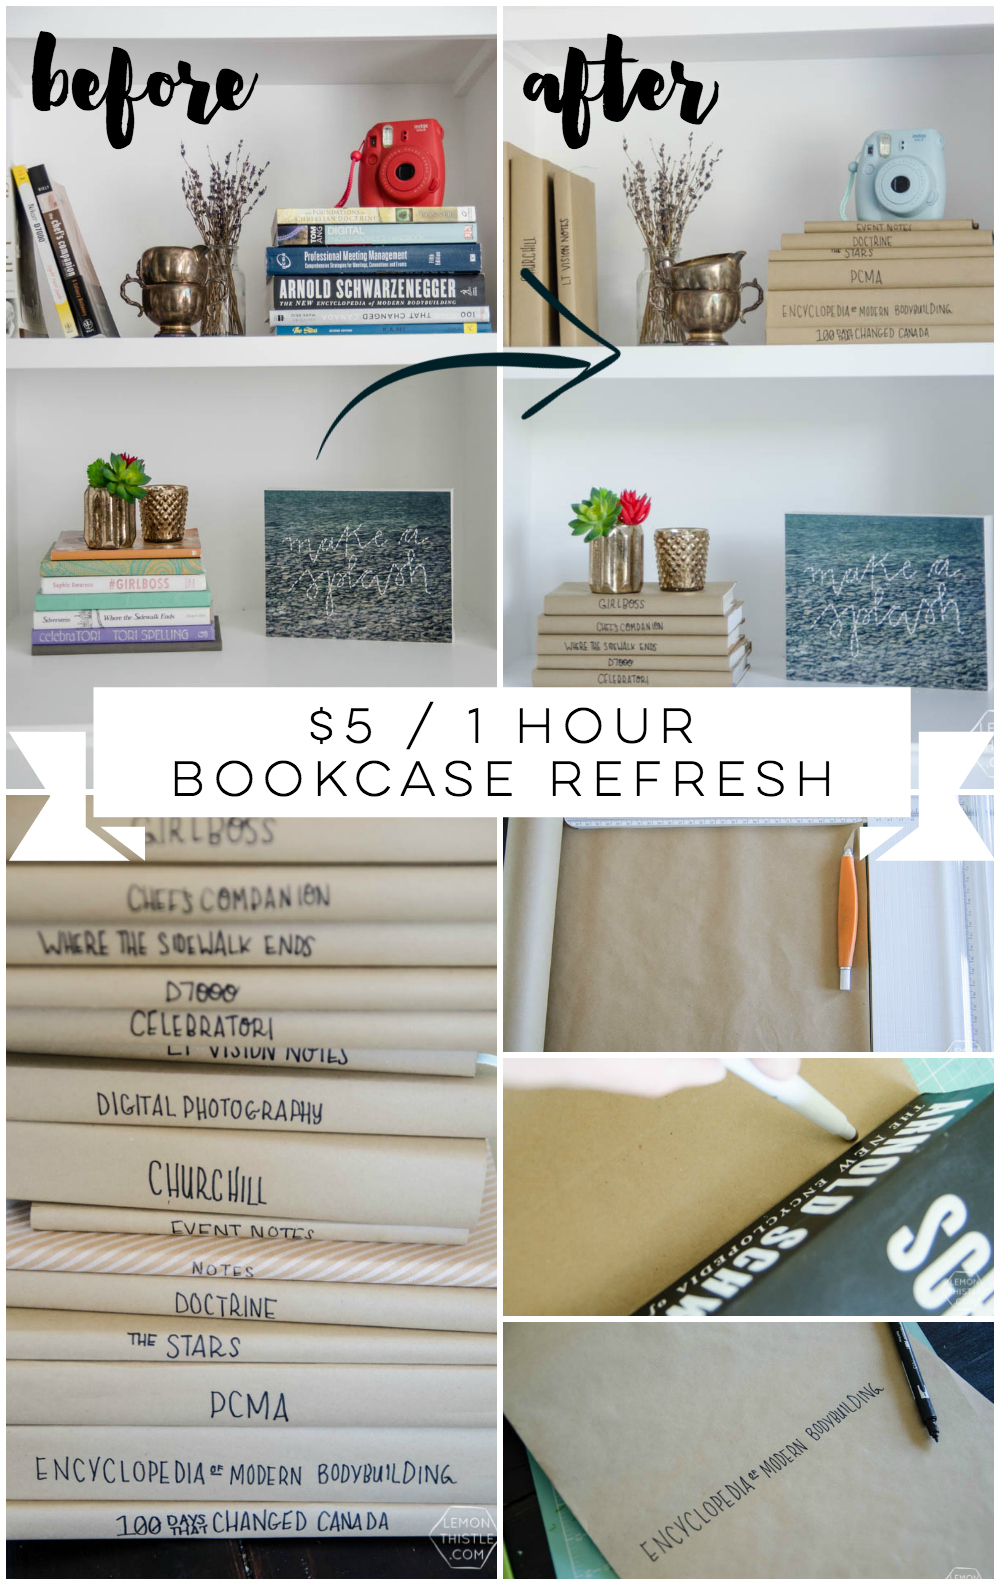 I love this bookshelf refresh! SUCH a big difference. I can't believe the simple book covers do so much.